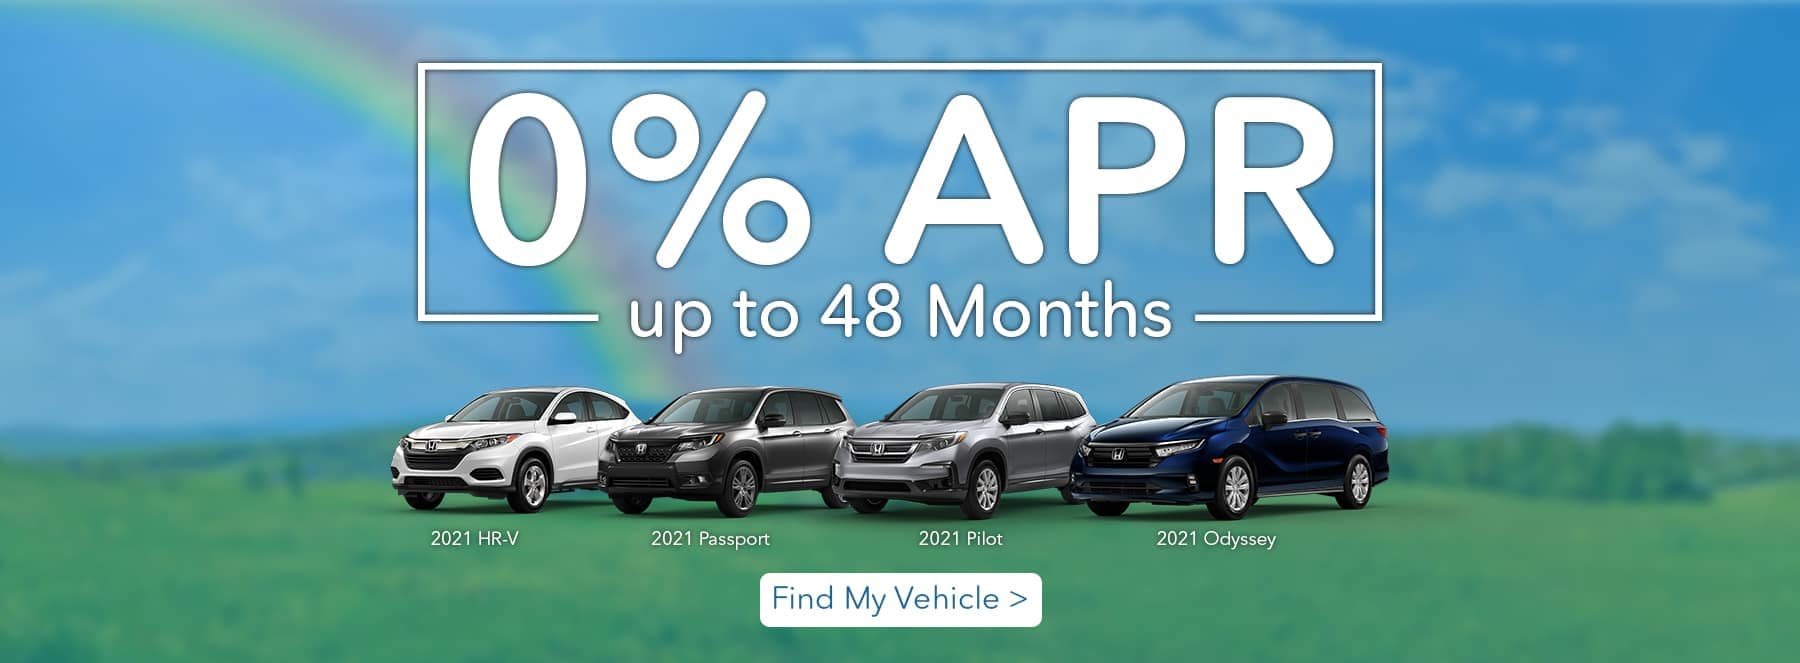 0% APR for up to 48 months